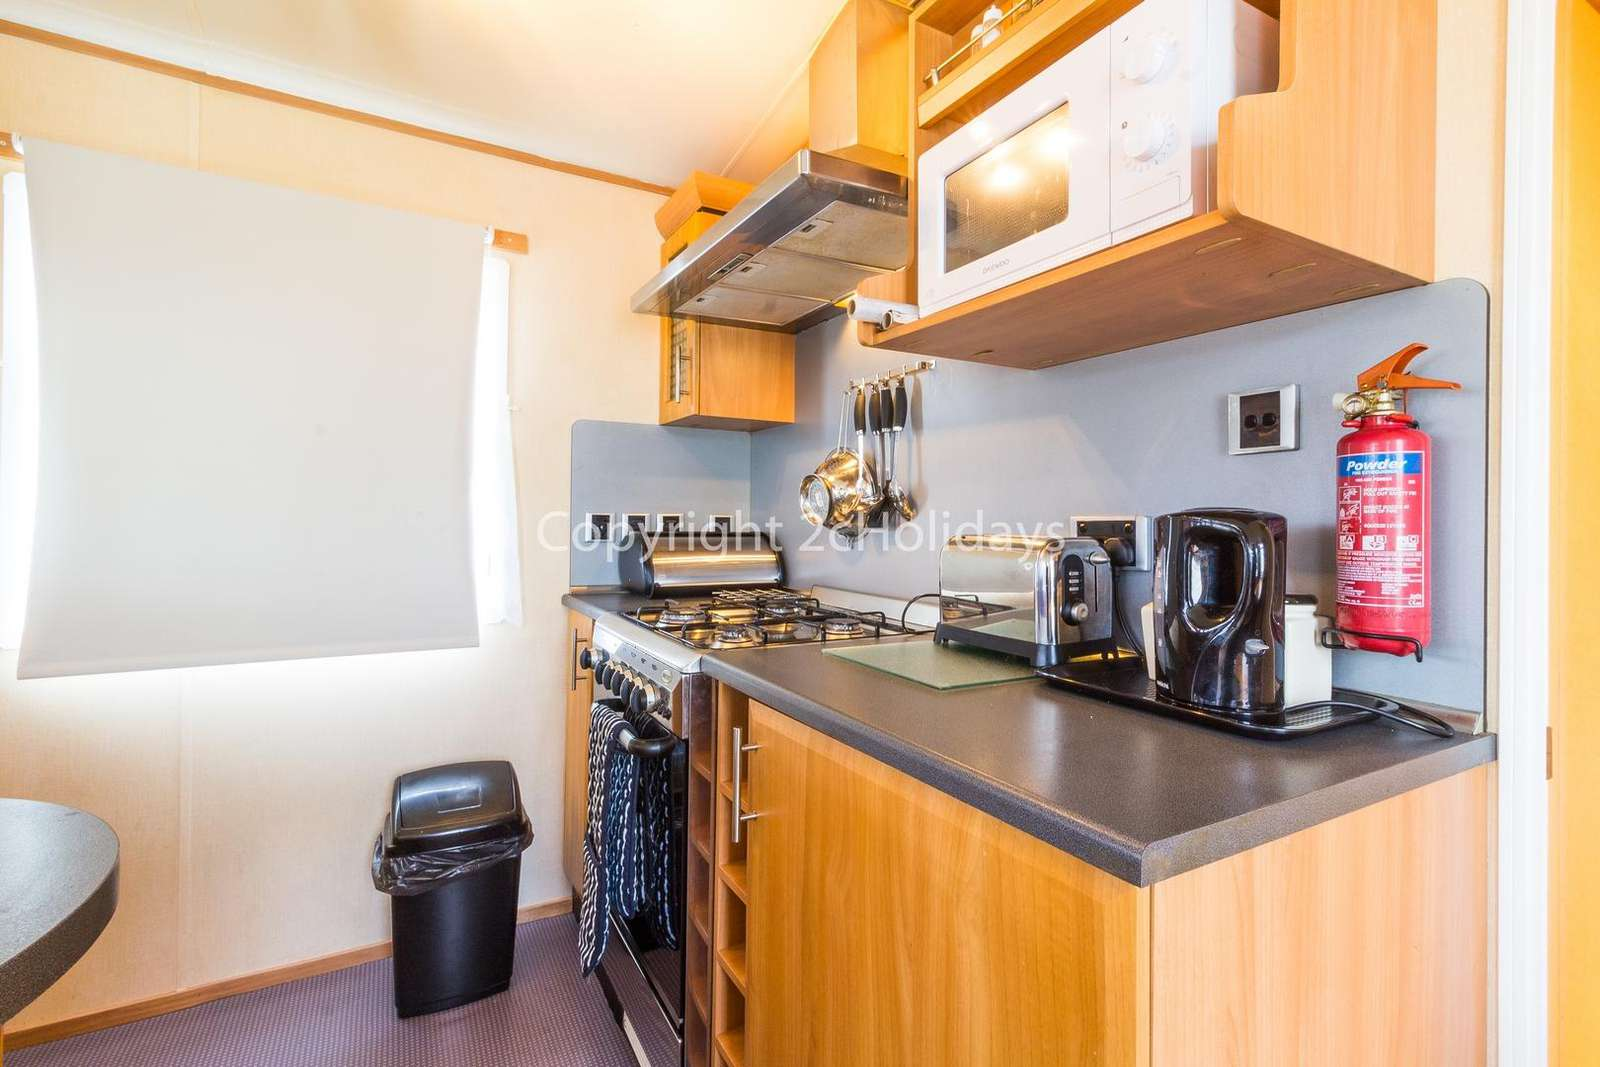 Includes a full size oven and fridge/freezer!